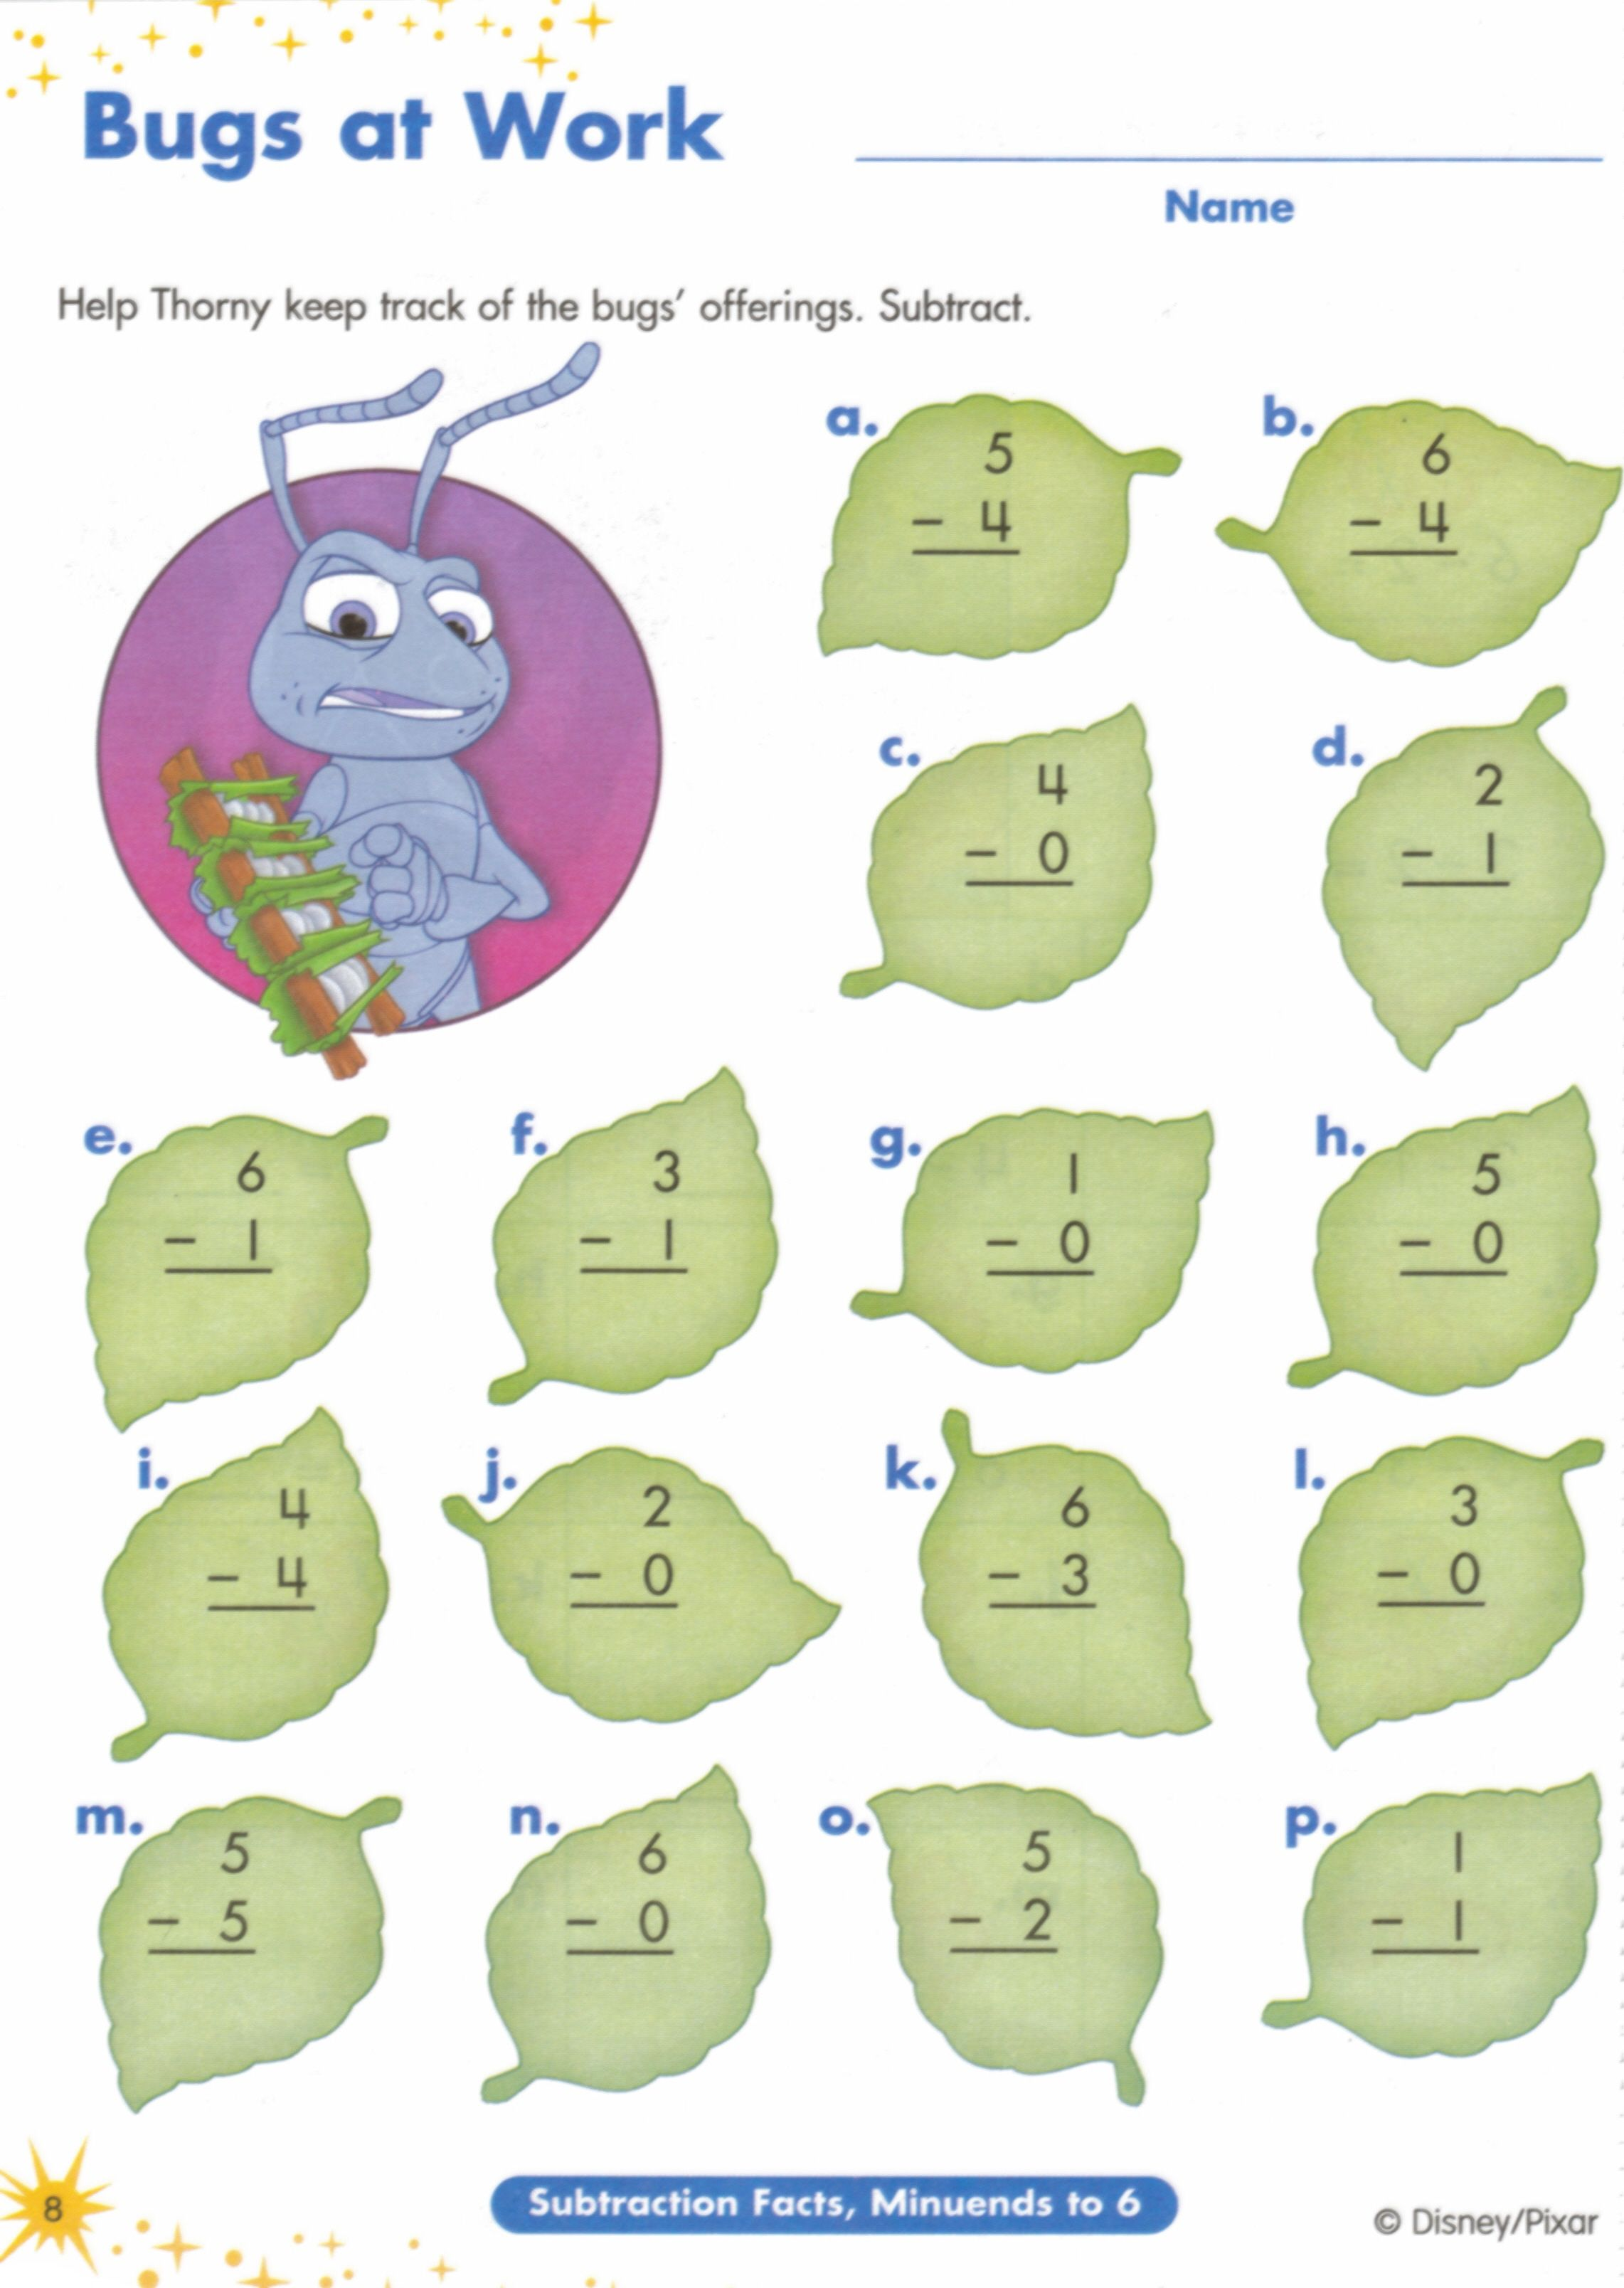 Proatmealus  Unusual  Images About Worksheets On Pinterest  Fun Facts For Kids  With Lovable  Images About Worksheets On Pinterest  Fun Facts For Kids Earth Day Worksheets And Jungles With Nice Naming Binary Compounds Worksheet With Answers Also Goodheart Willcox Worksheets Answers In Addition Punnett Square Worksheets And Constitution Day Worksheets As Well As Goal Planning Worksheet Additionally Th Grade Language Arts Worksheets From Pinterestcom With Proatmealus  Lovable  Images About Worksheets On Pinterest  Fun Facts For Kids  With Nice  Images About Worksheets On Pinterest  Fun Facts For Kids Earth Day Worksheets And Jungles And Unusual Naming Binary Compounds Worksheet With Answers Also Goodheart Willcox Worksheets Answers In Addition Punnett Square Worksheets From Pinterestcom